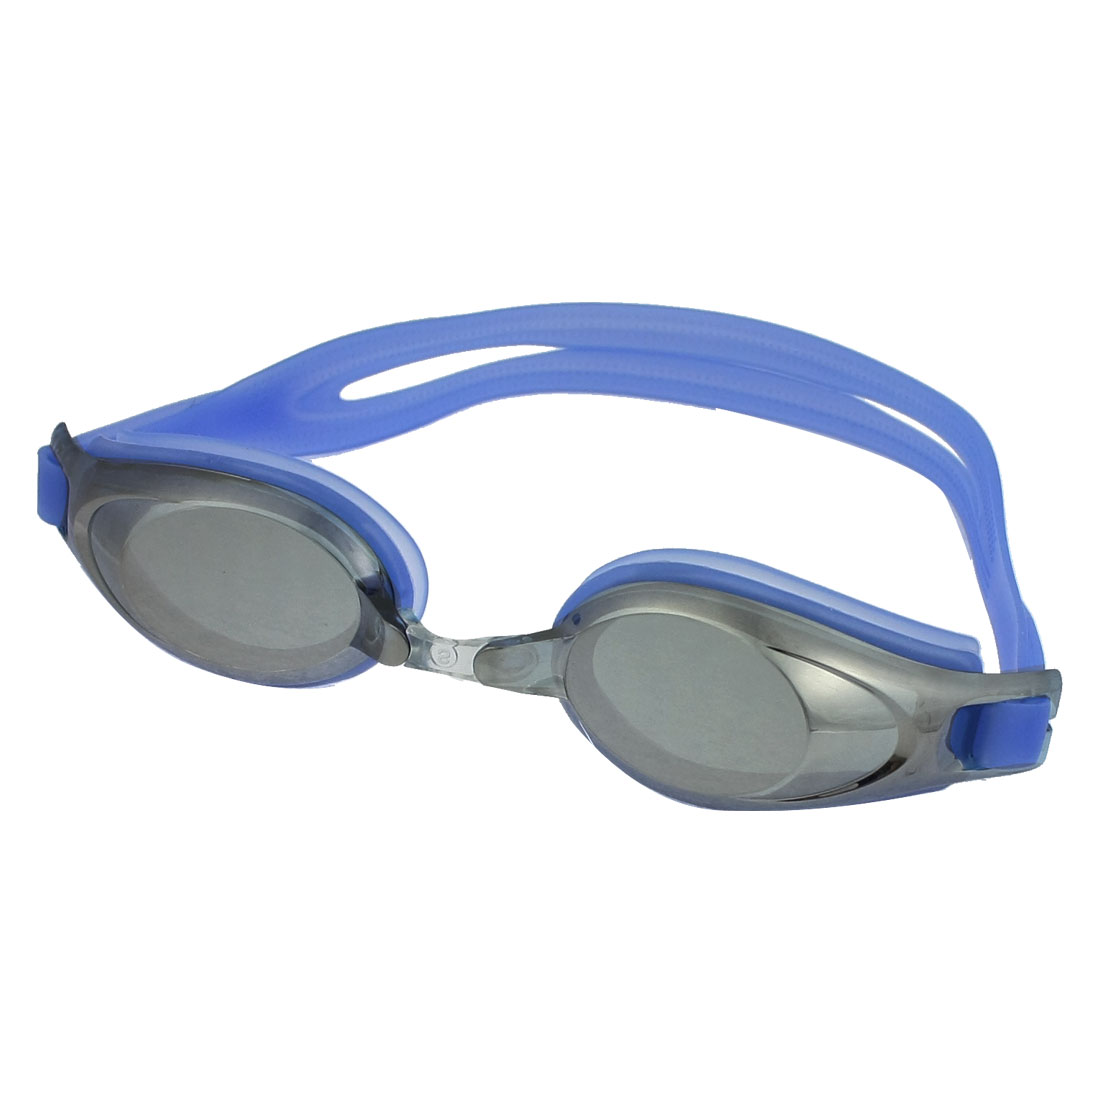 Adjustable Band Replaceable Bridge Blue Silicone Swimming Goggles for Adults